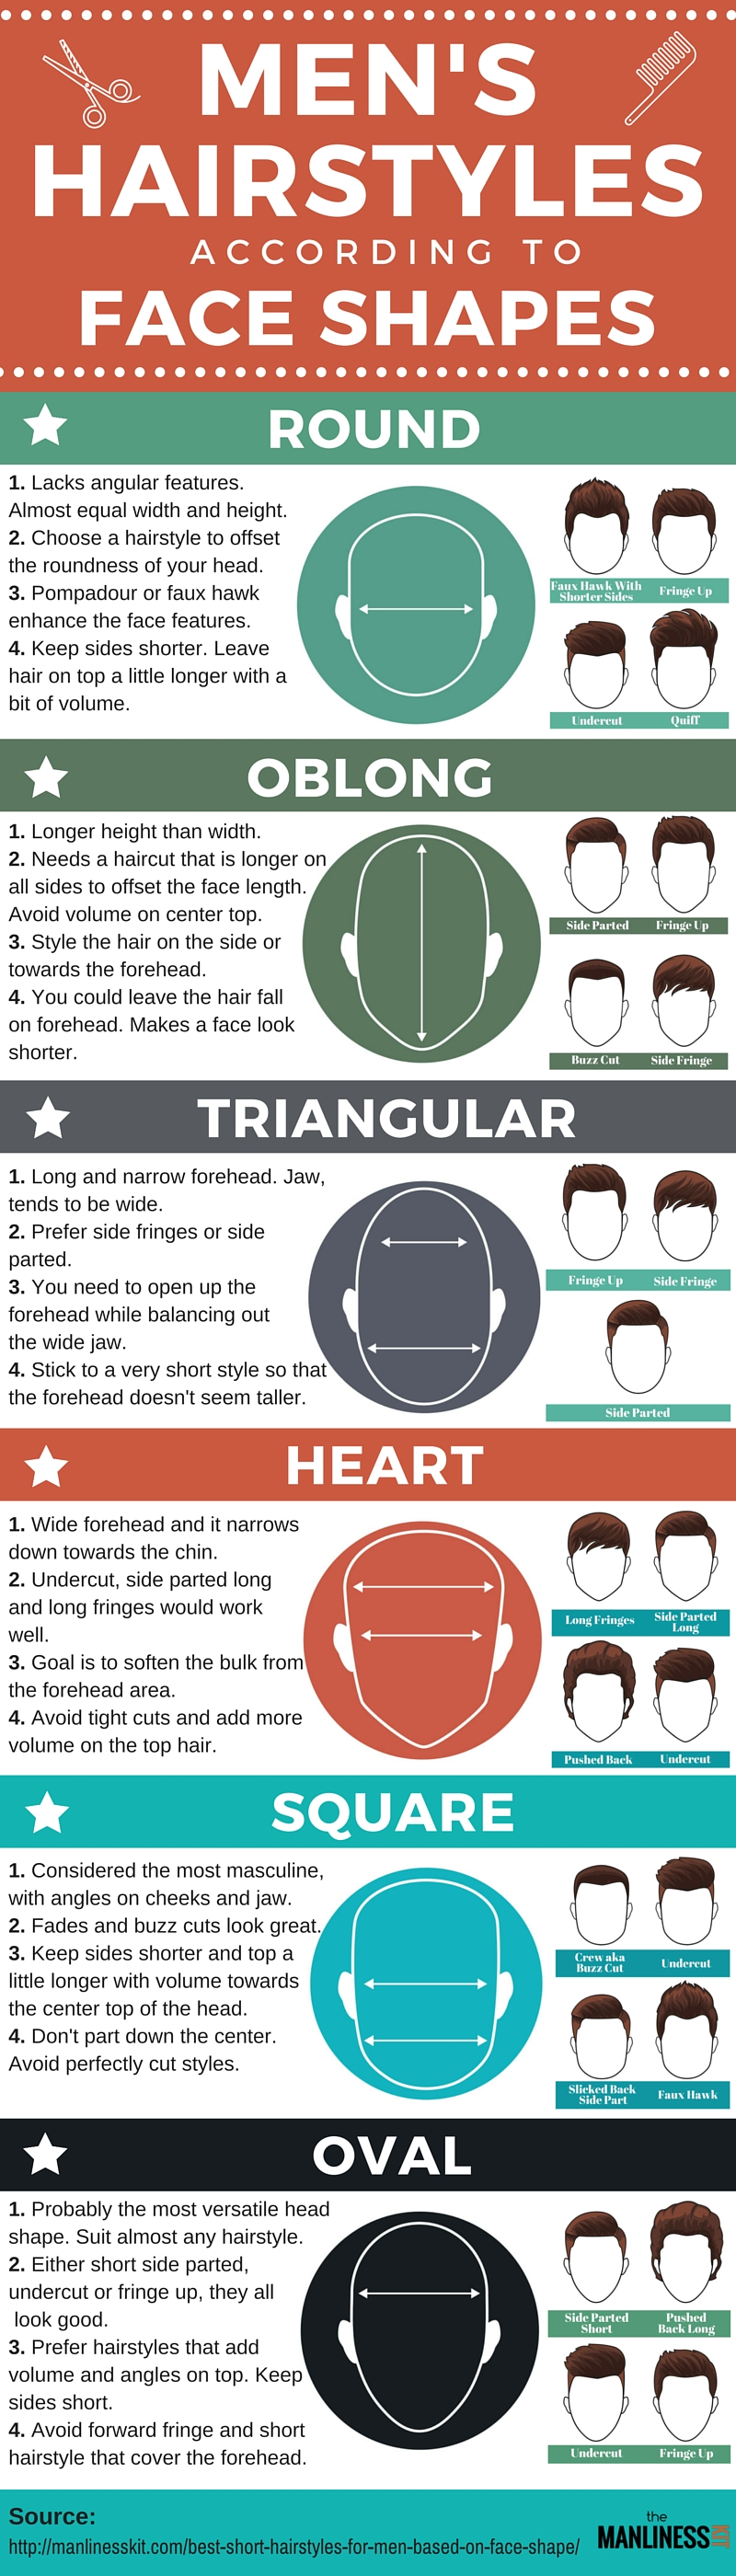 The Best Short Hairstyles For Men Based On Face Shape. The